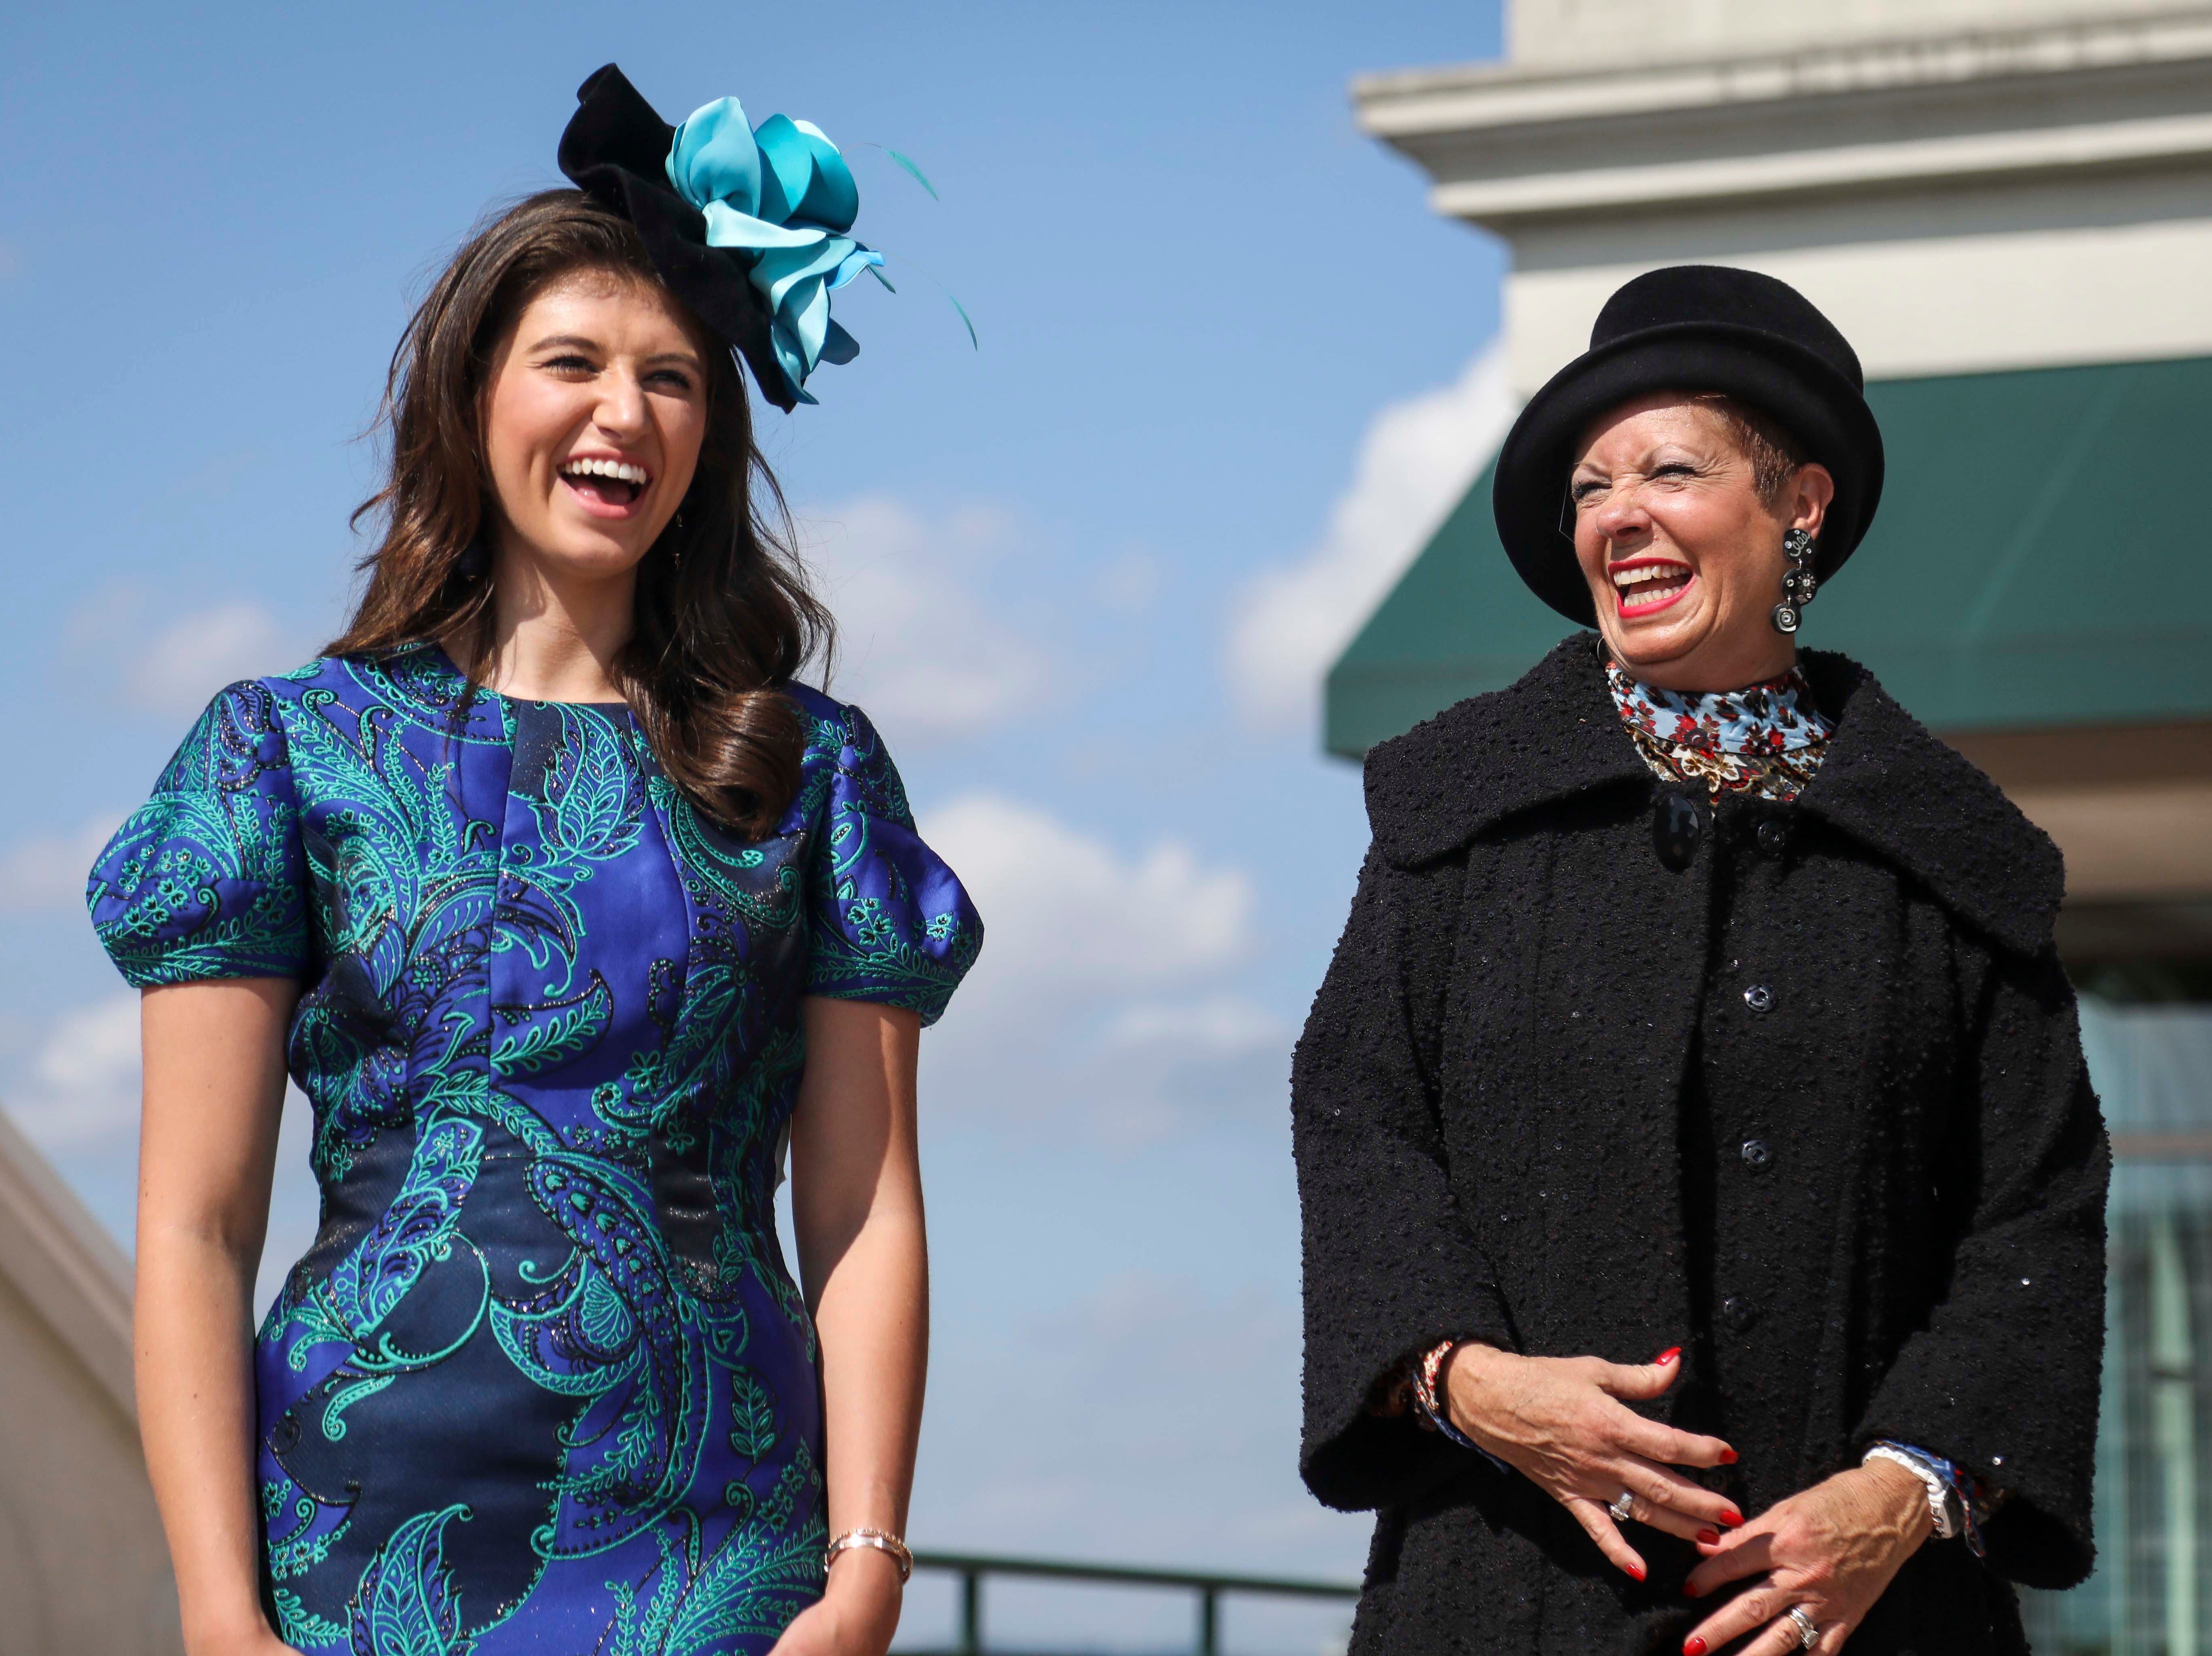 Katie Bouchard, left, and Patty Ethington, right, laugh during an interview with the Courier Journal while sporting dresses made by Lourdes Chavez and hats made by Christine Moore, track fashion expert and owner of Cam Hats, ahead of the Breeders Cup (November 3) at Churchill Downs on Wednesday, October 3, 2018.